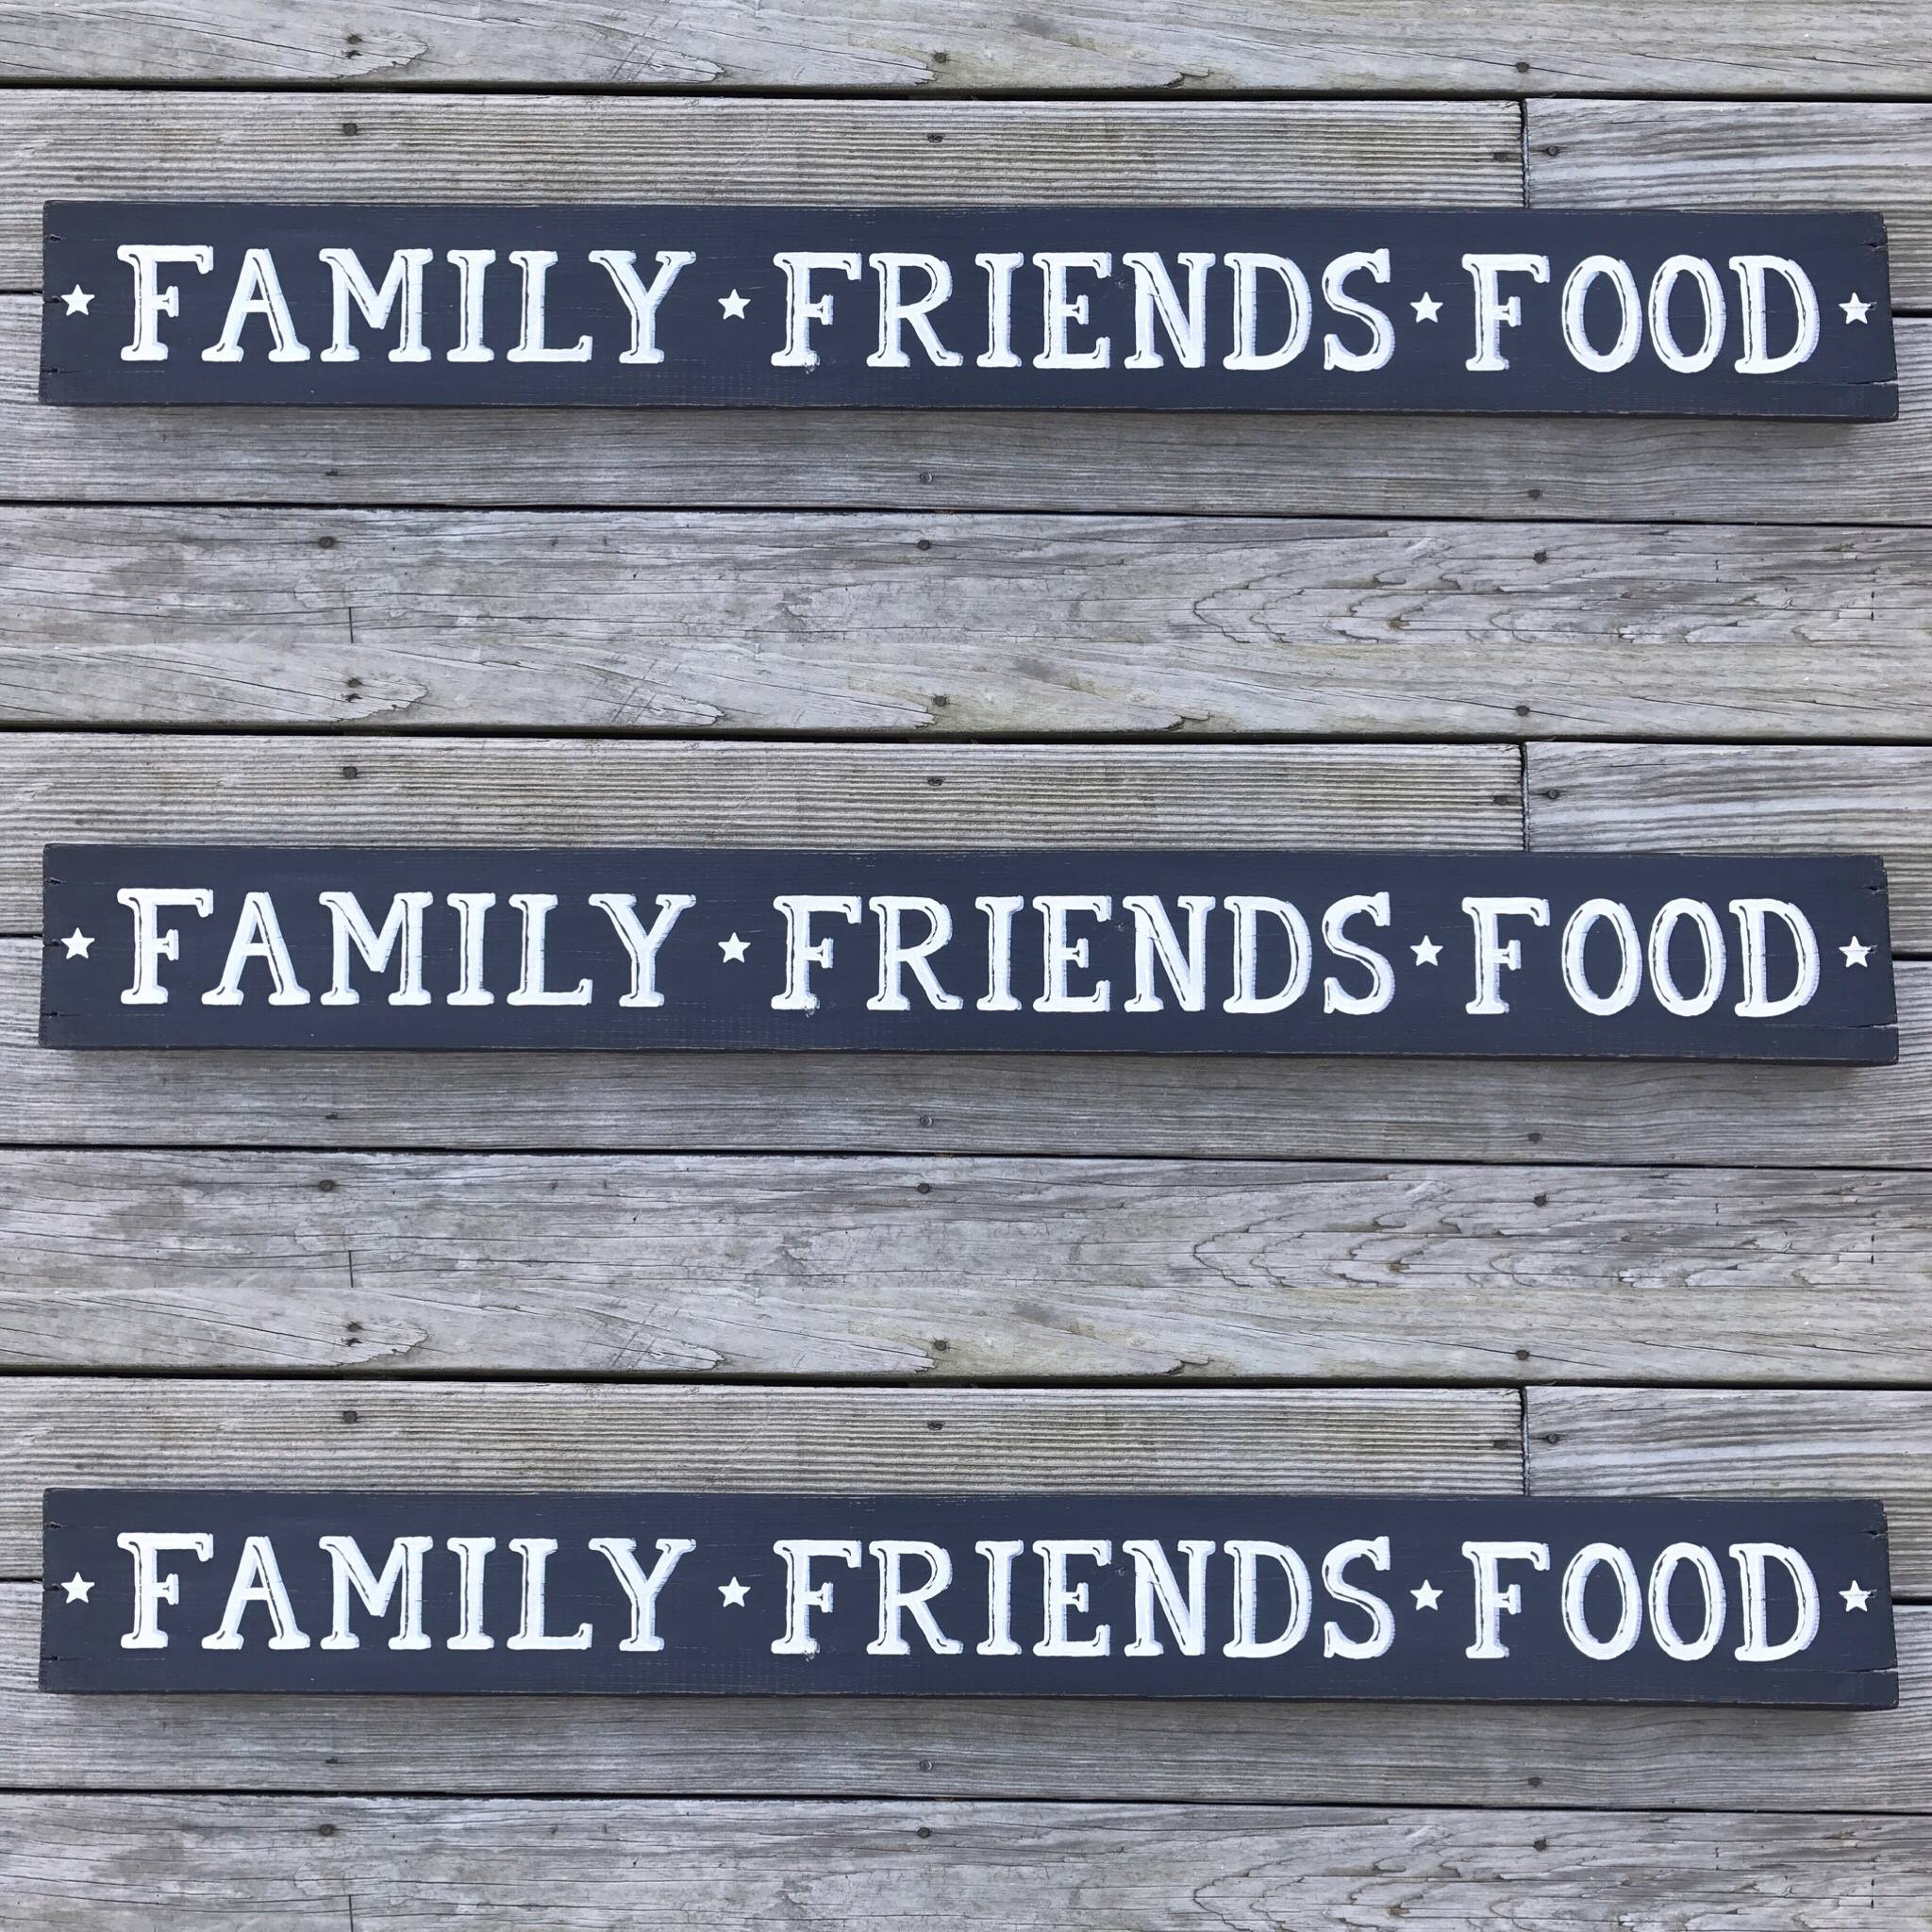 Family, Food, Friends